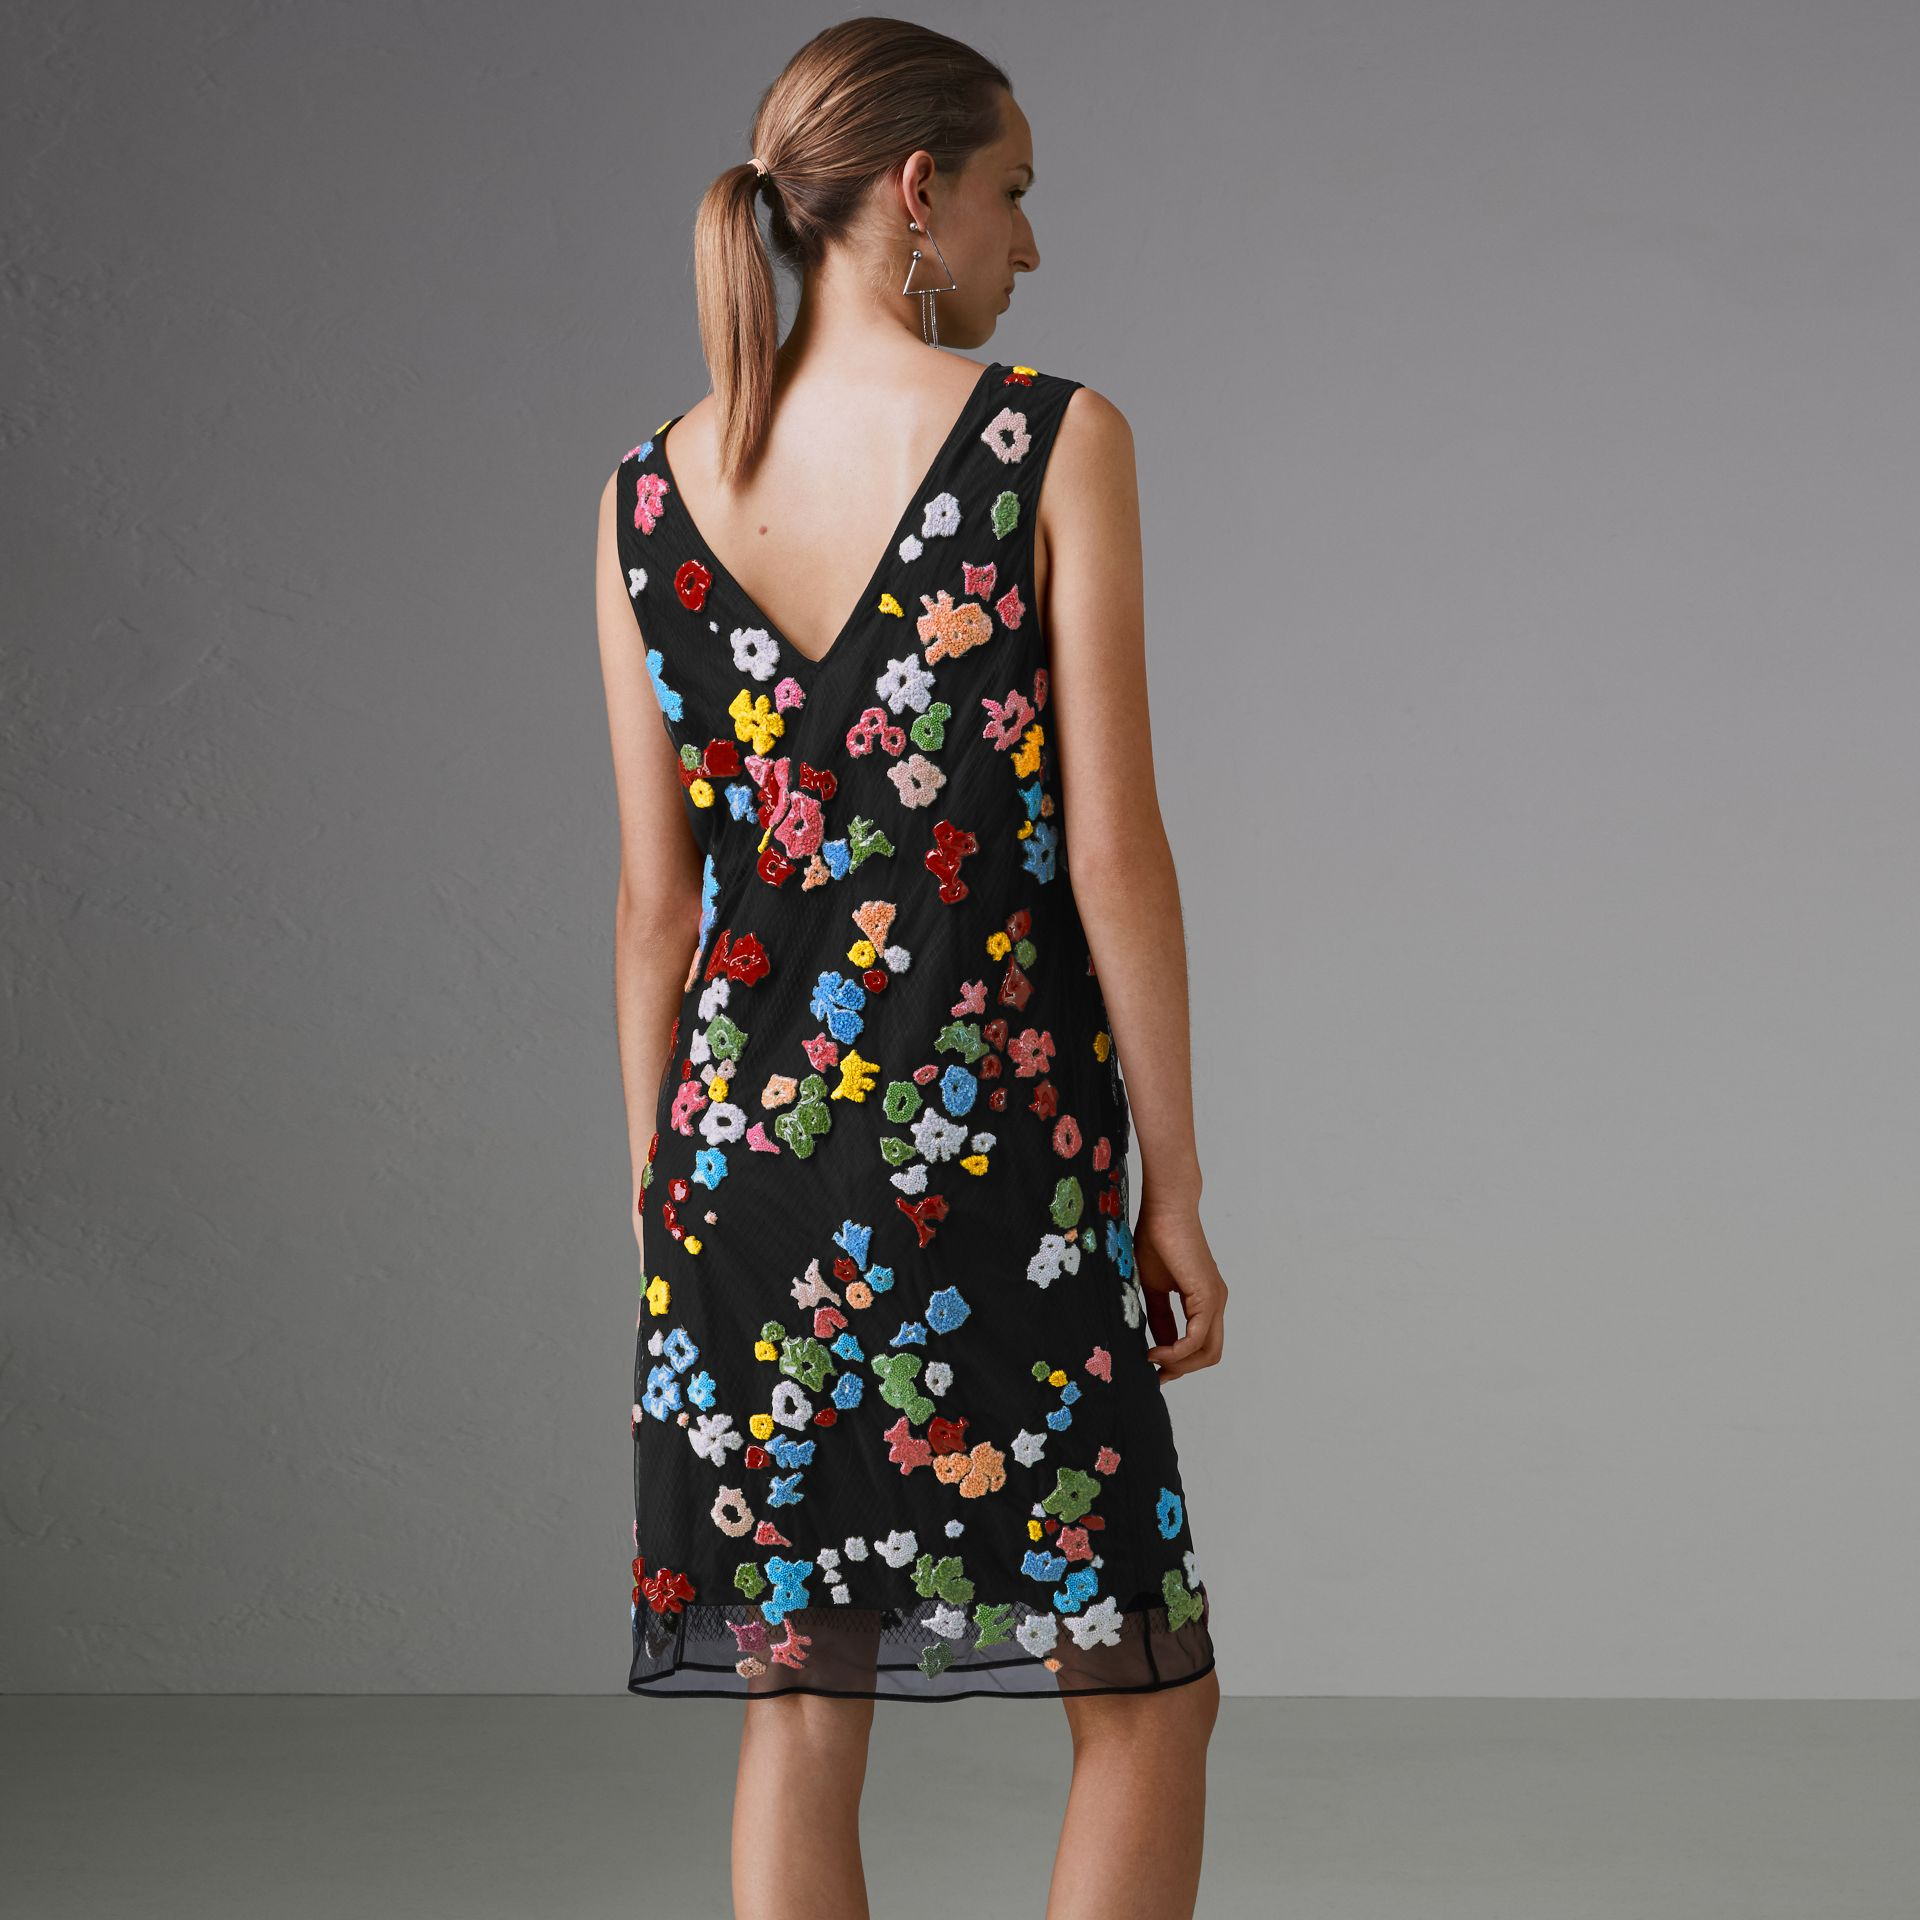 Hand-beaded Floral Dress in Black/bright Red - Women | Burberry - gallery image 2